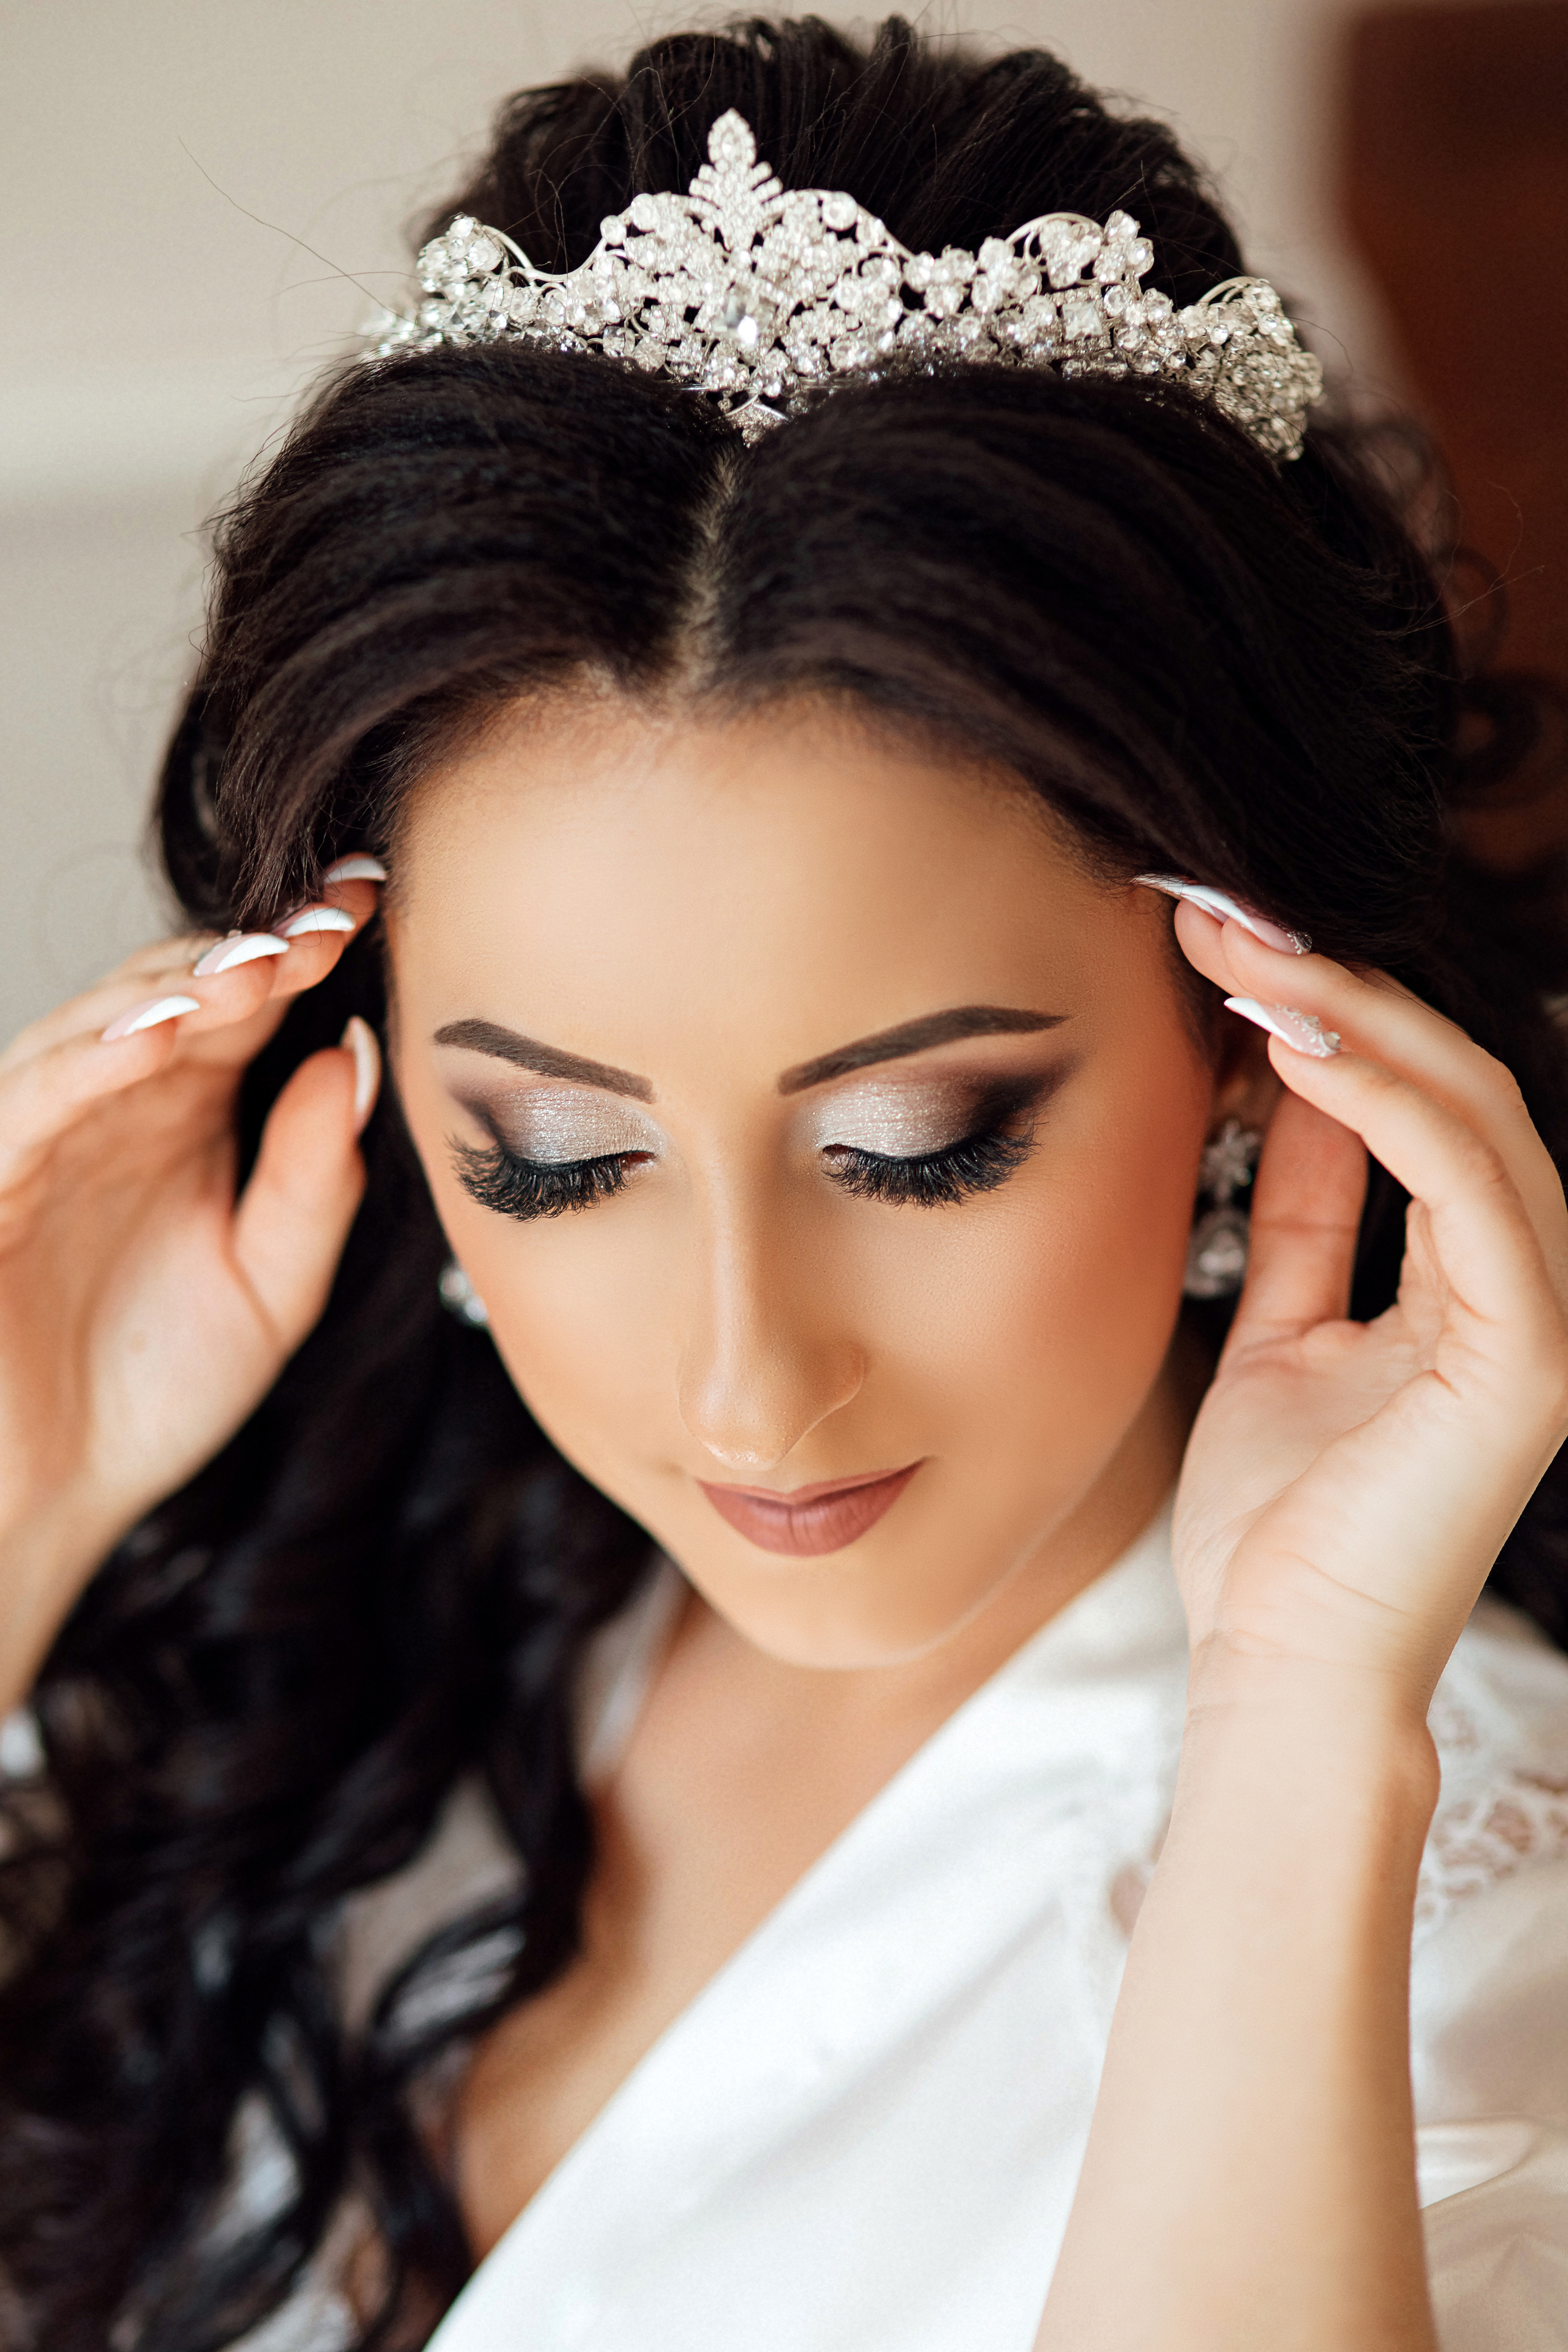 BECOME A PROFESSIONAL MAKEUP ARTIST IN CANADA LEARN BEAUTY AND BRIDAL